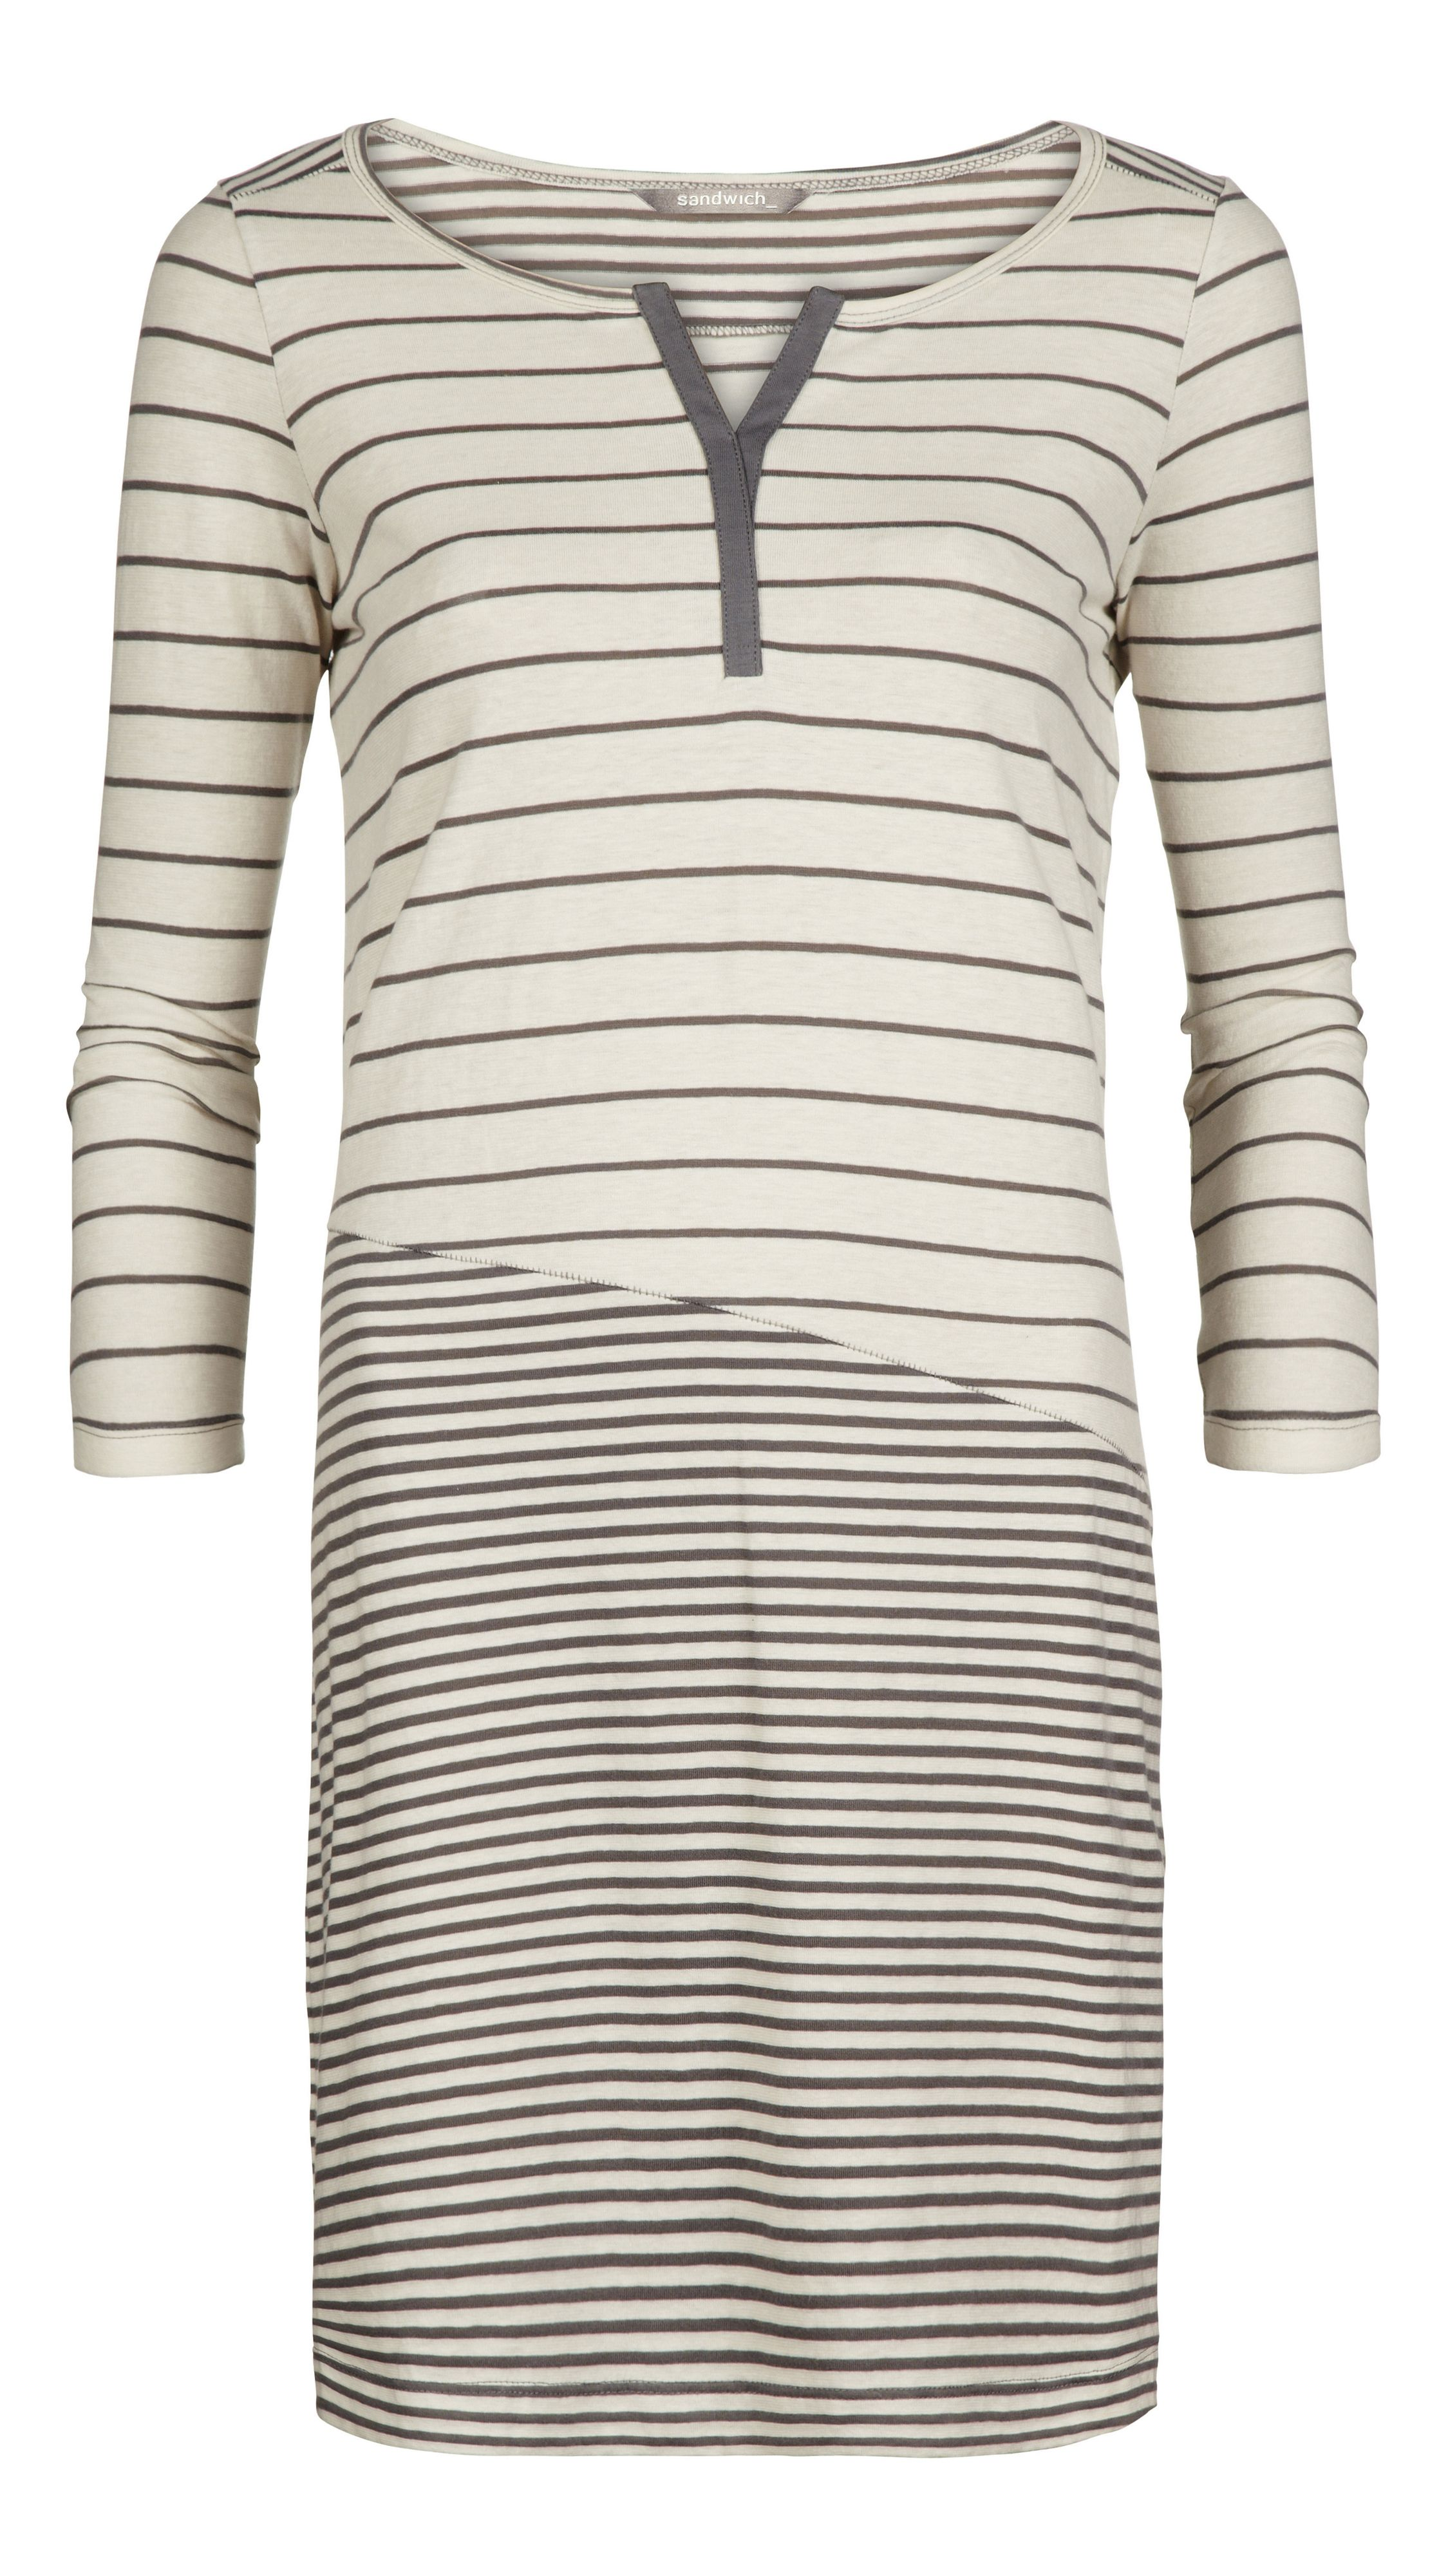 Stripped cotton stretch dress